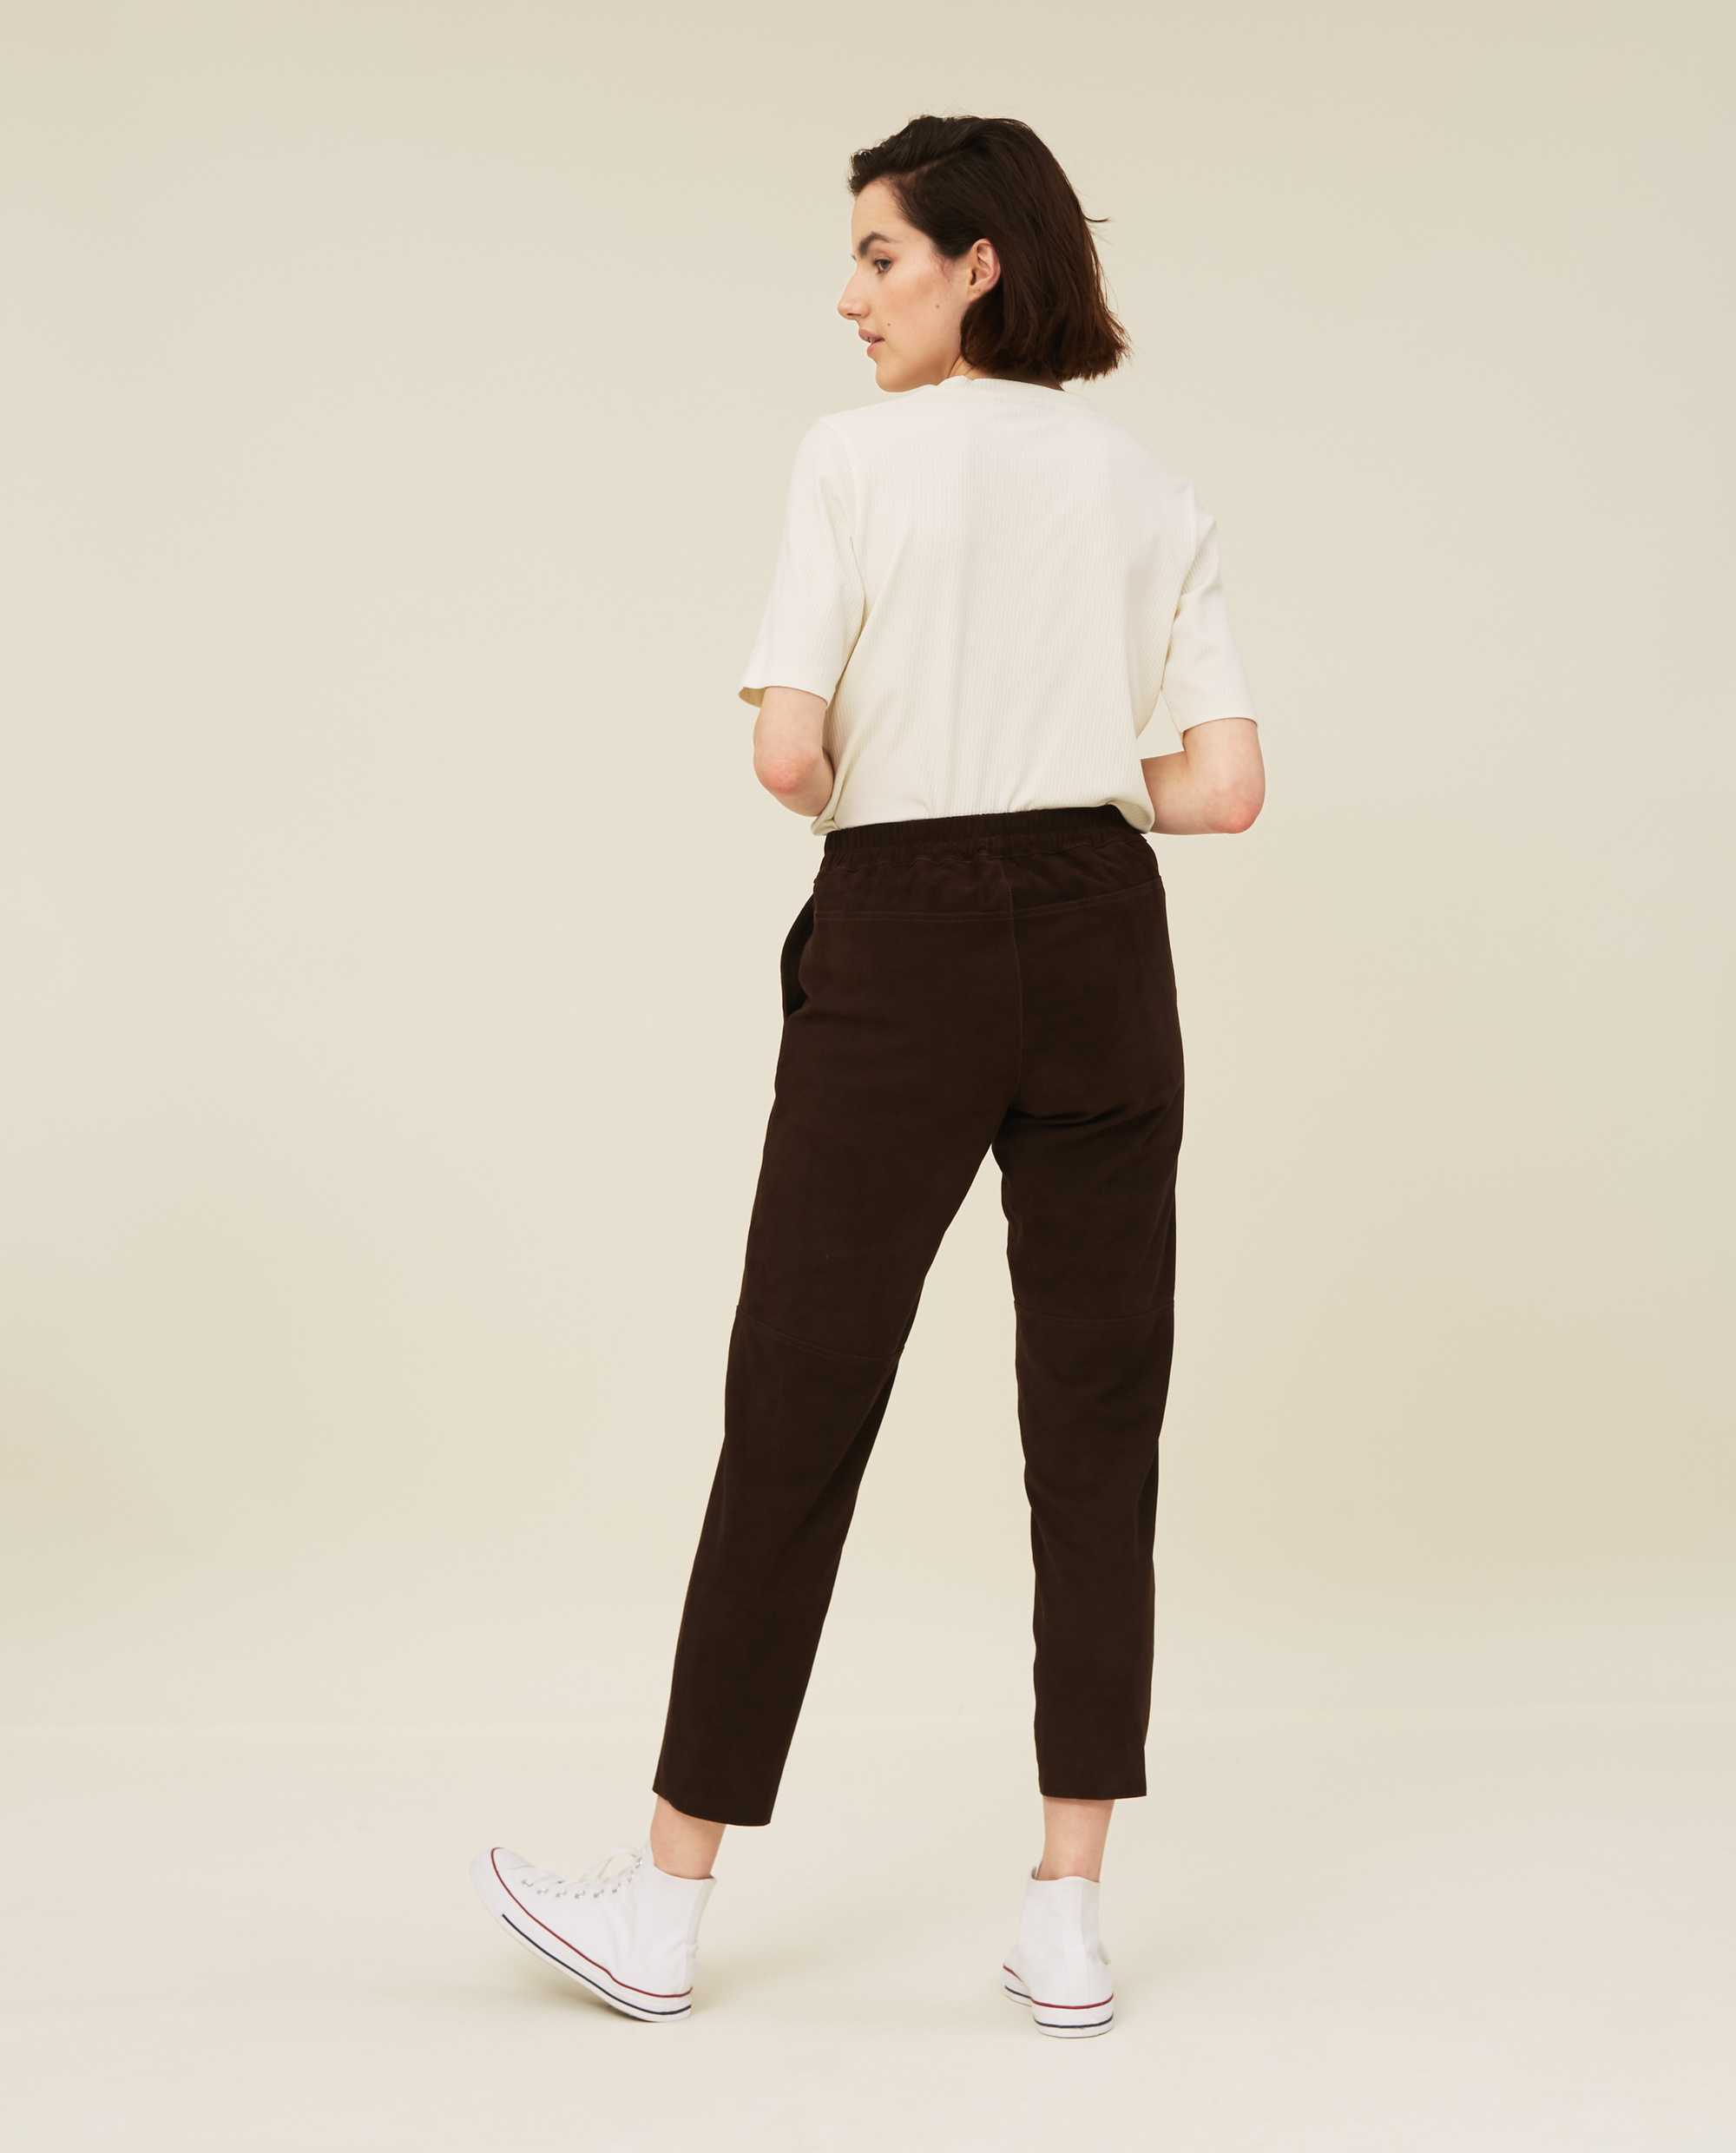 Olivia Suede Pants, Dark Brown